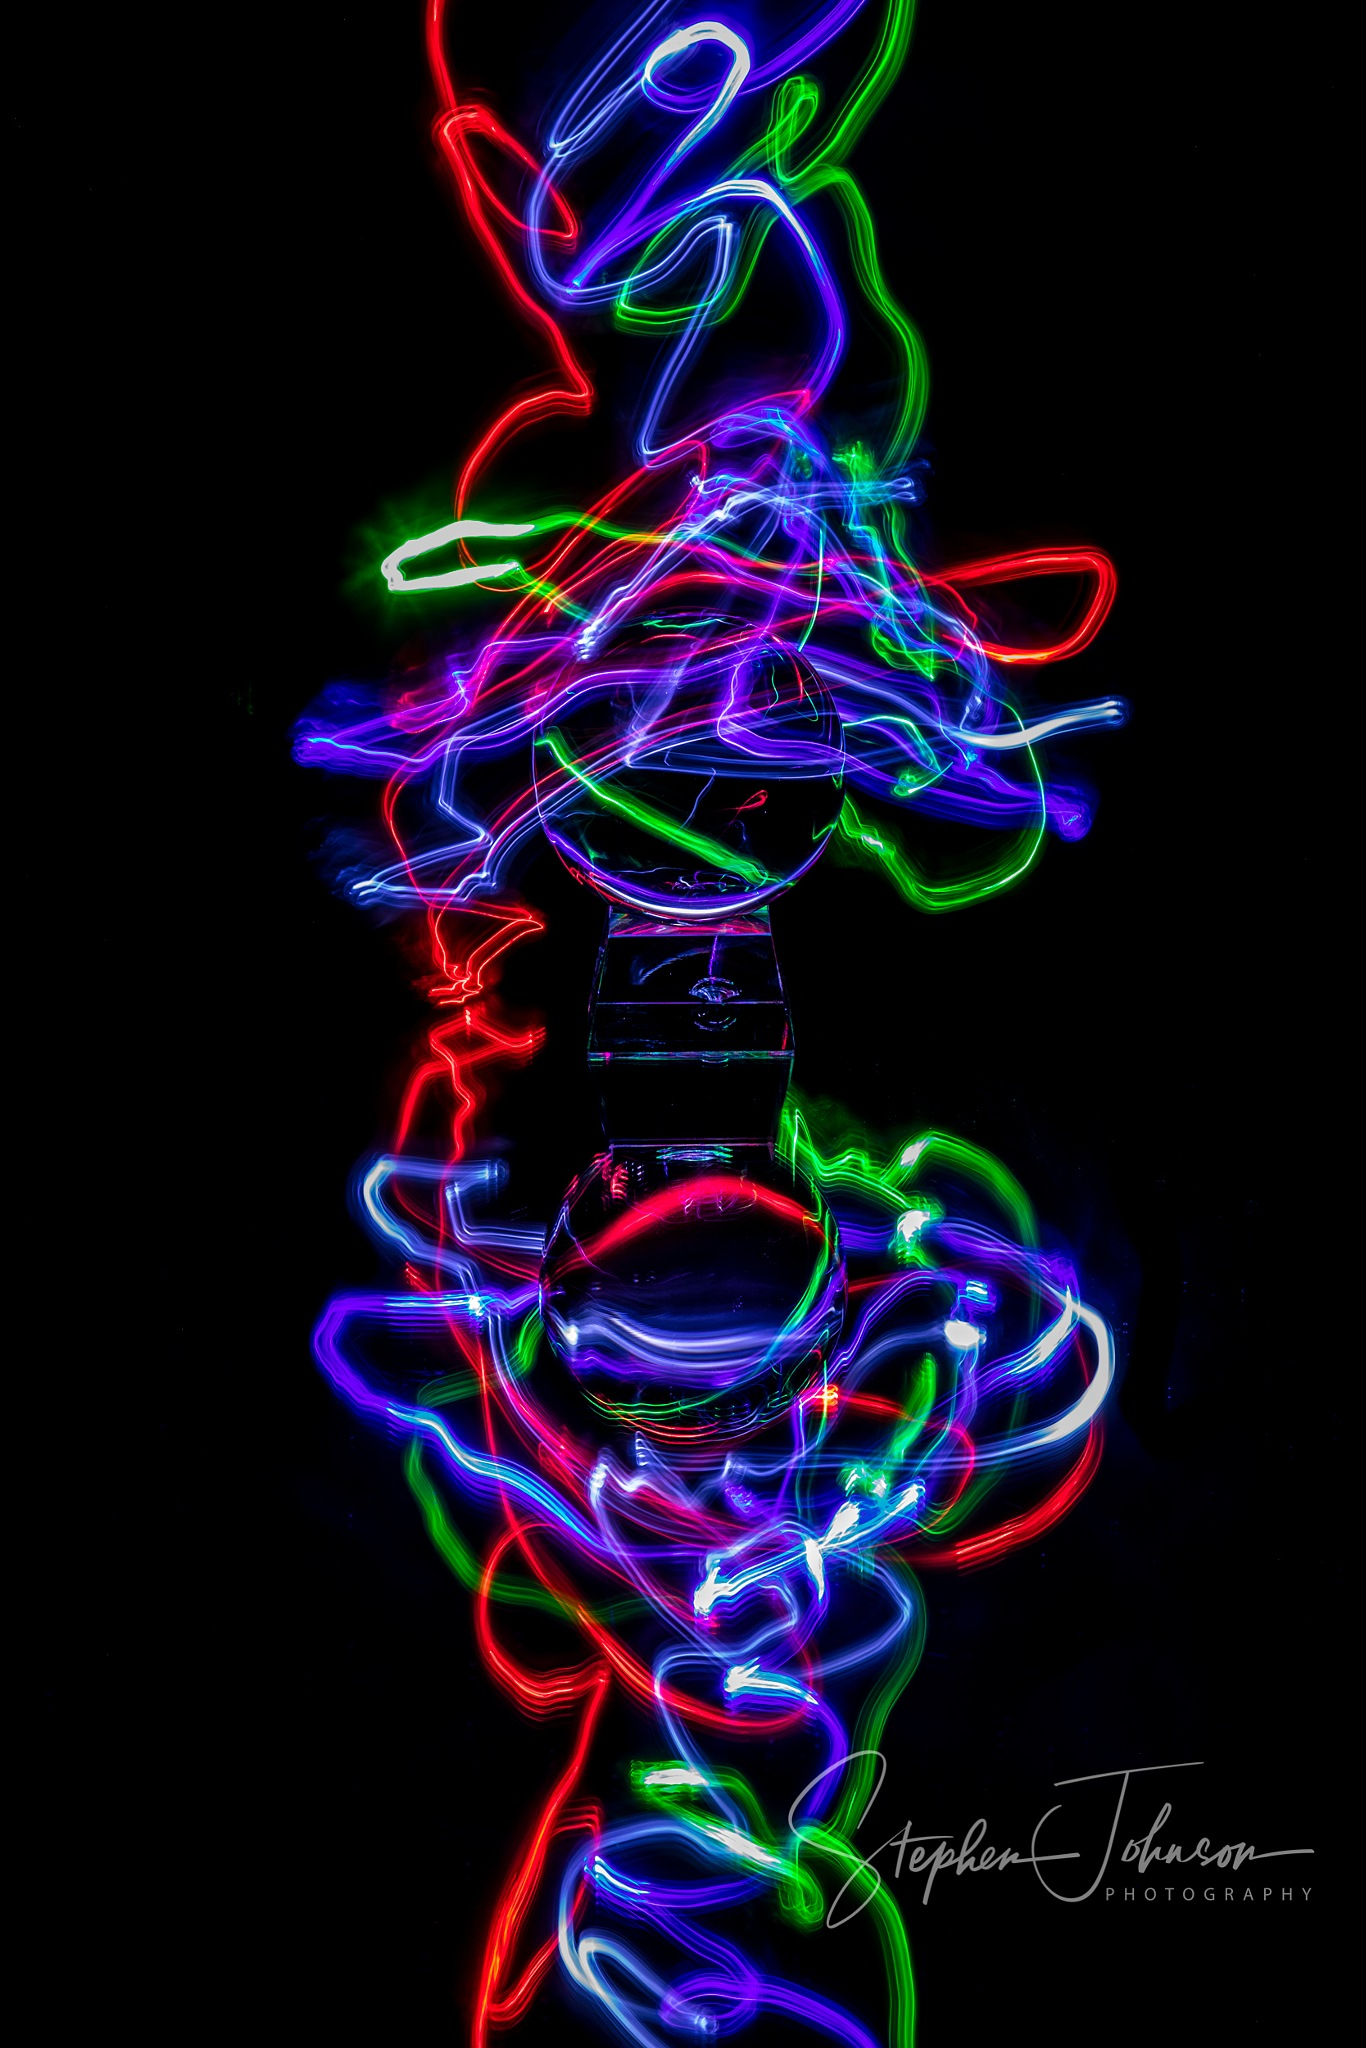 Light Painting . . . by Stephen Johnson Photography